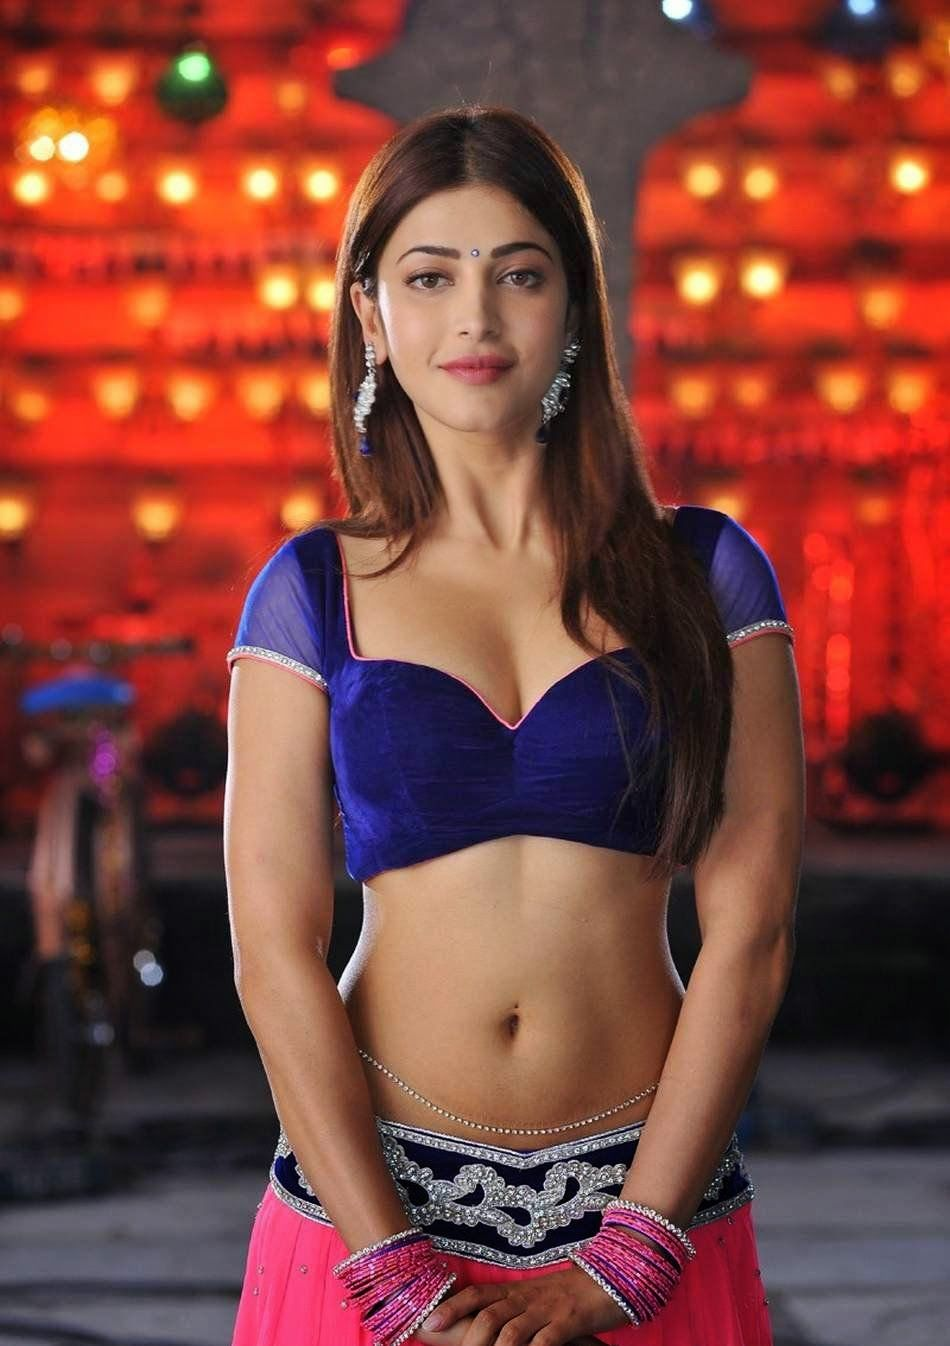 A BIG Happy Smile for Shruti Haasan for